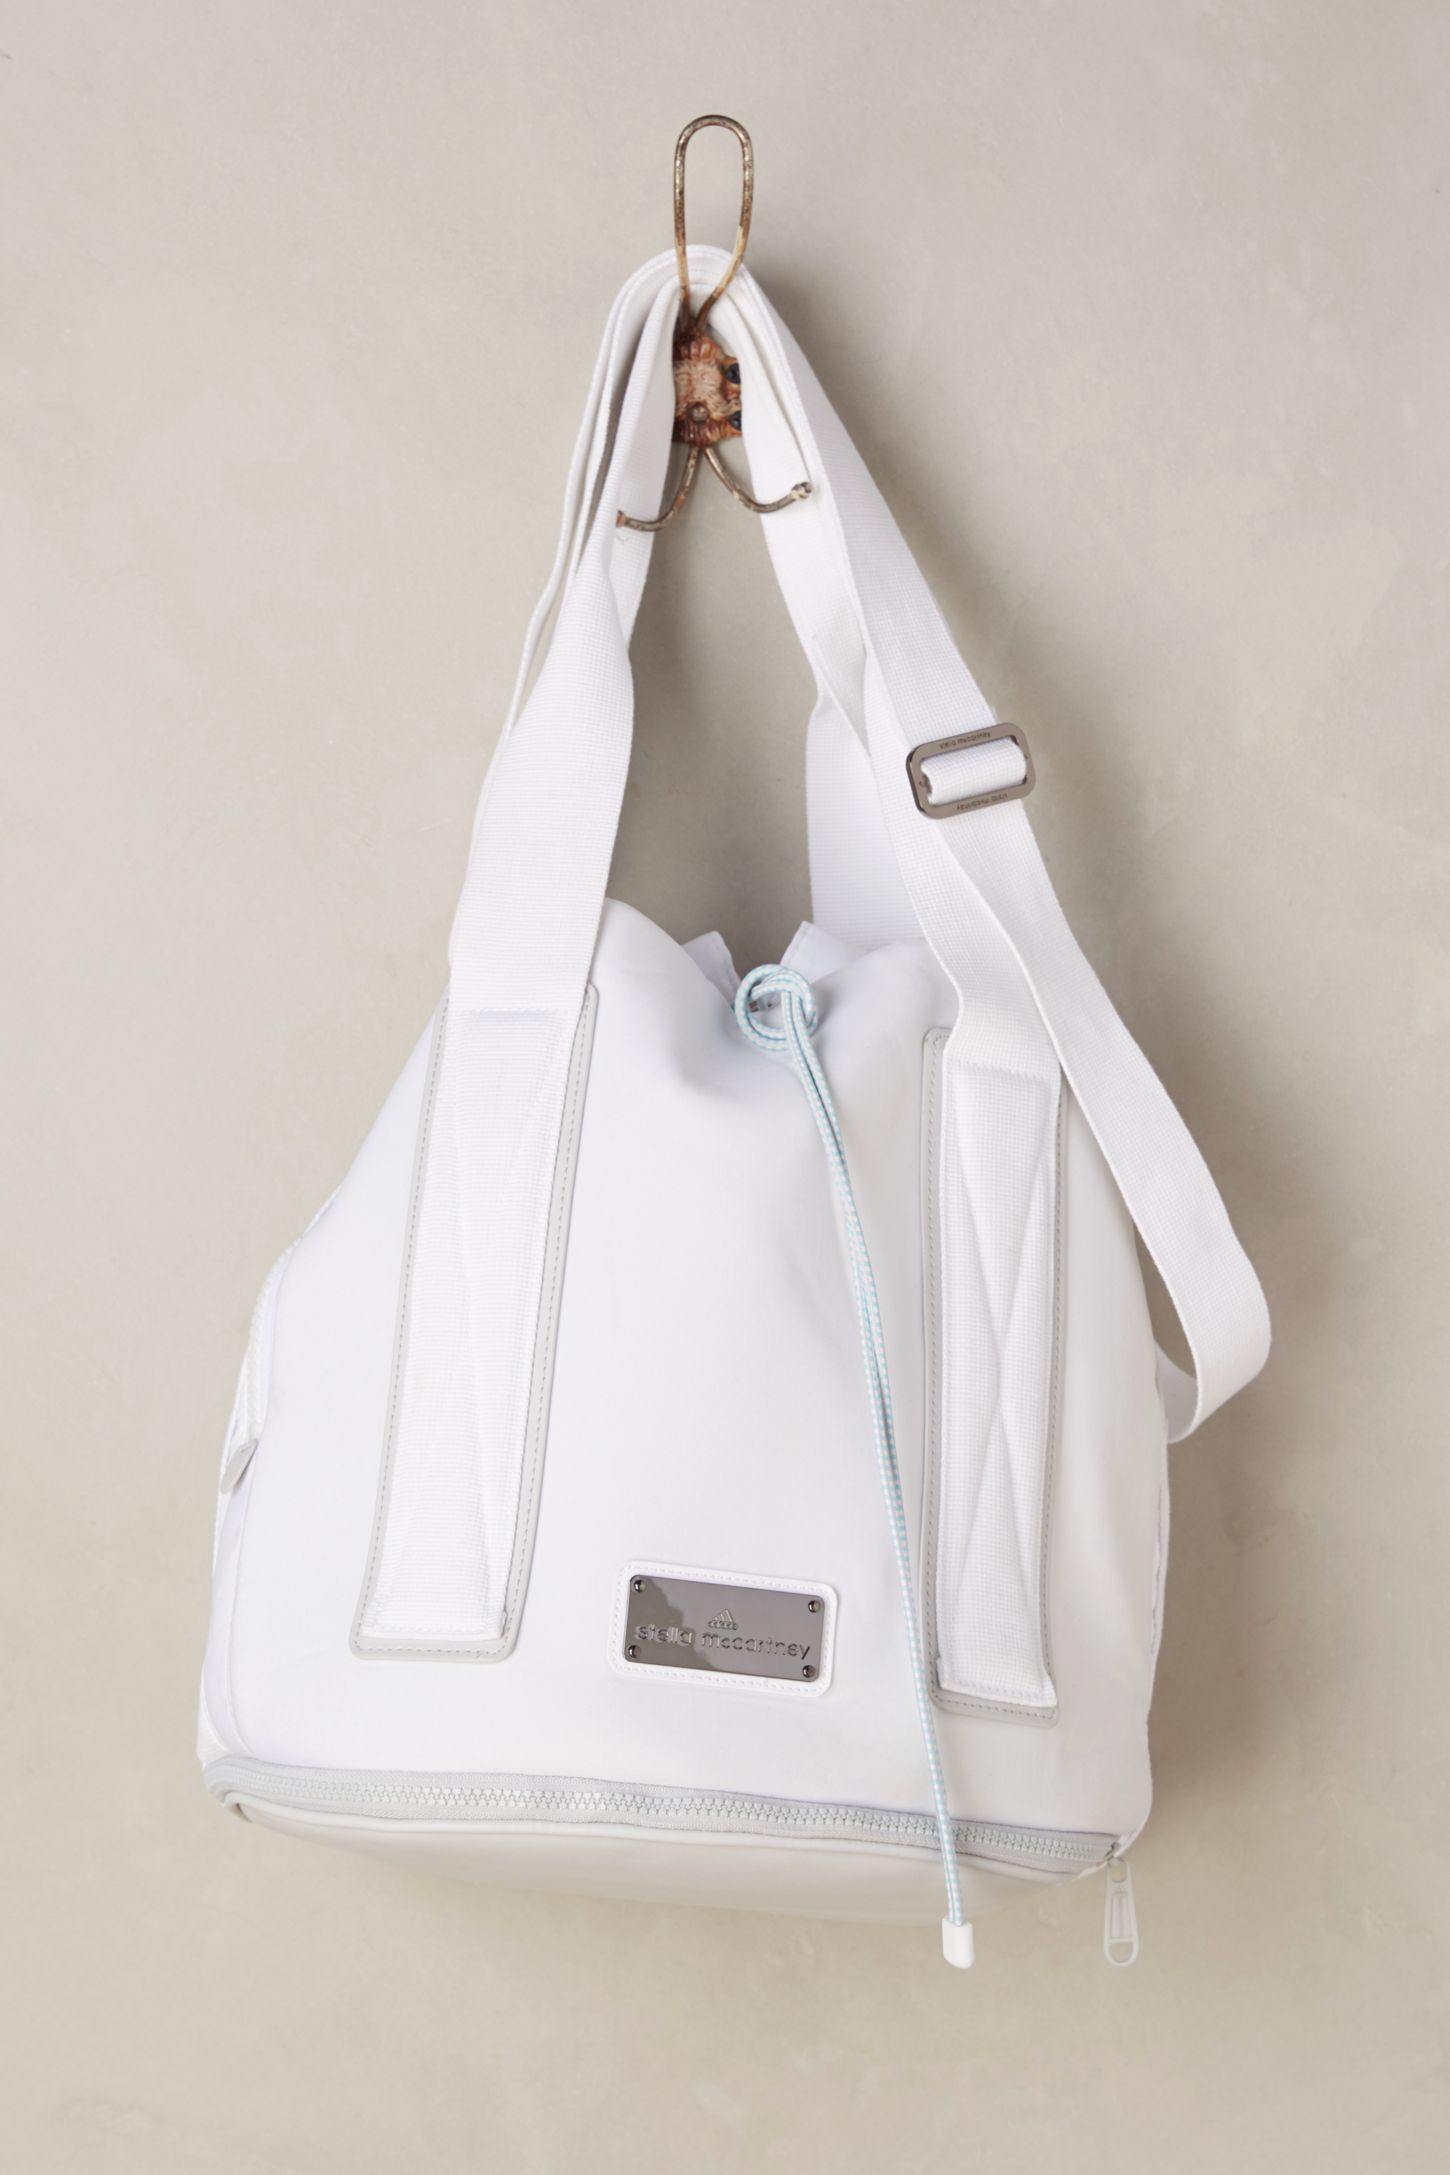 Adidas by Stella McCartney Tennis Bag. Tap image to zoom. Hover your mouse  over an image to zoom. Double Tap to Zoom 353c538e96